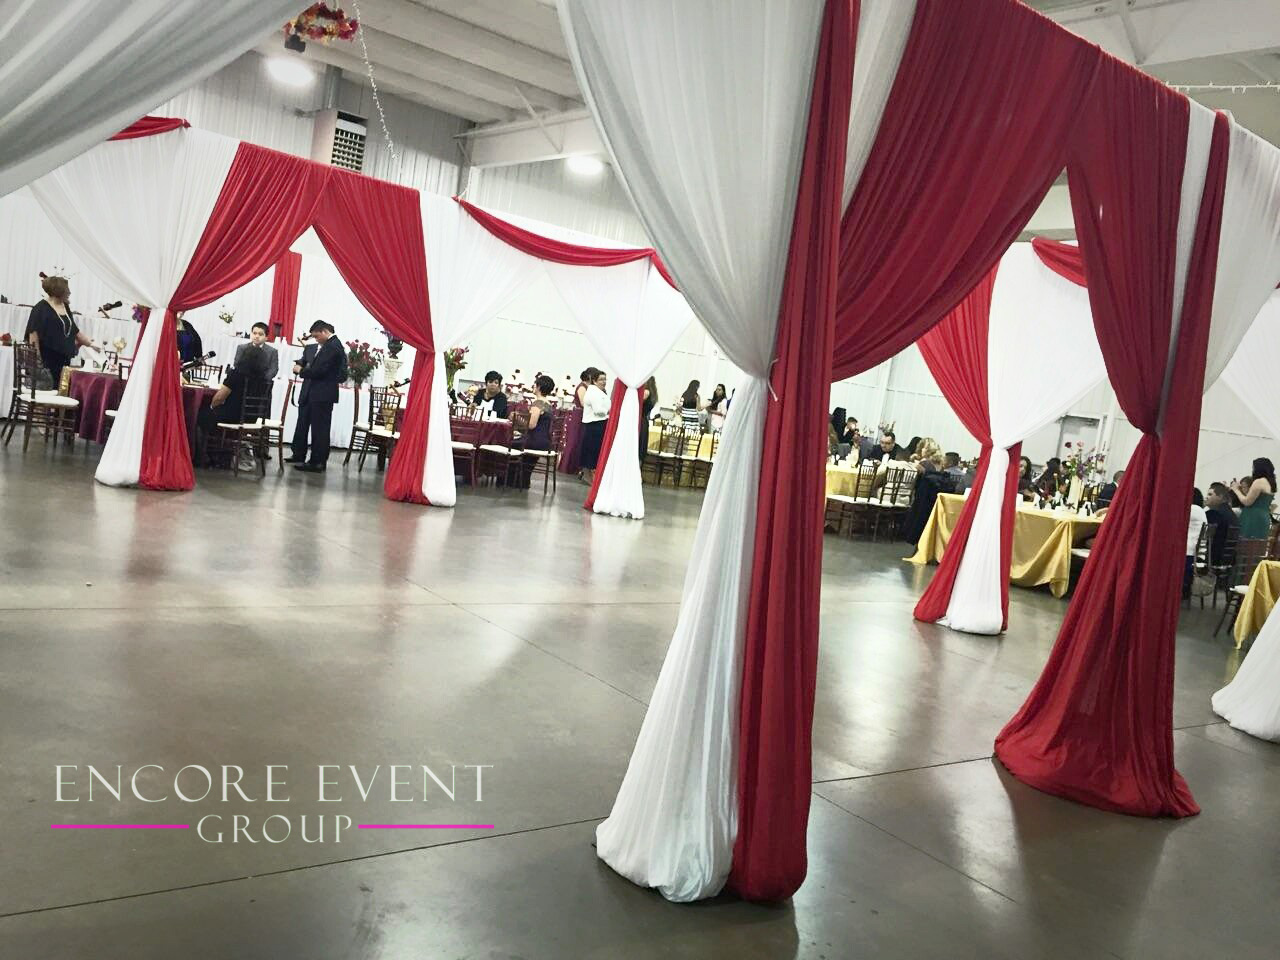 Magnificent Barry Expo Center Hastings Mi Red Draping Encore Event Group Andrewgaddart Wooden Chair Designs For Living Room Andrewgaddartcom